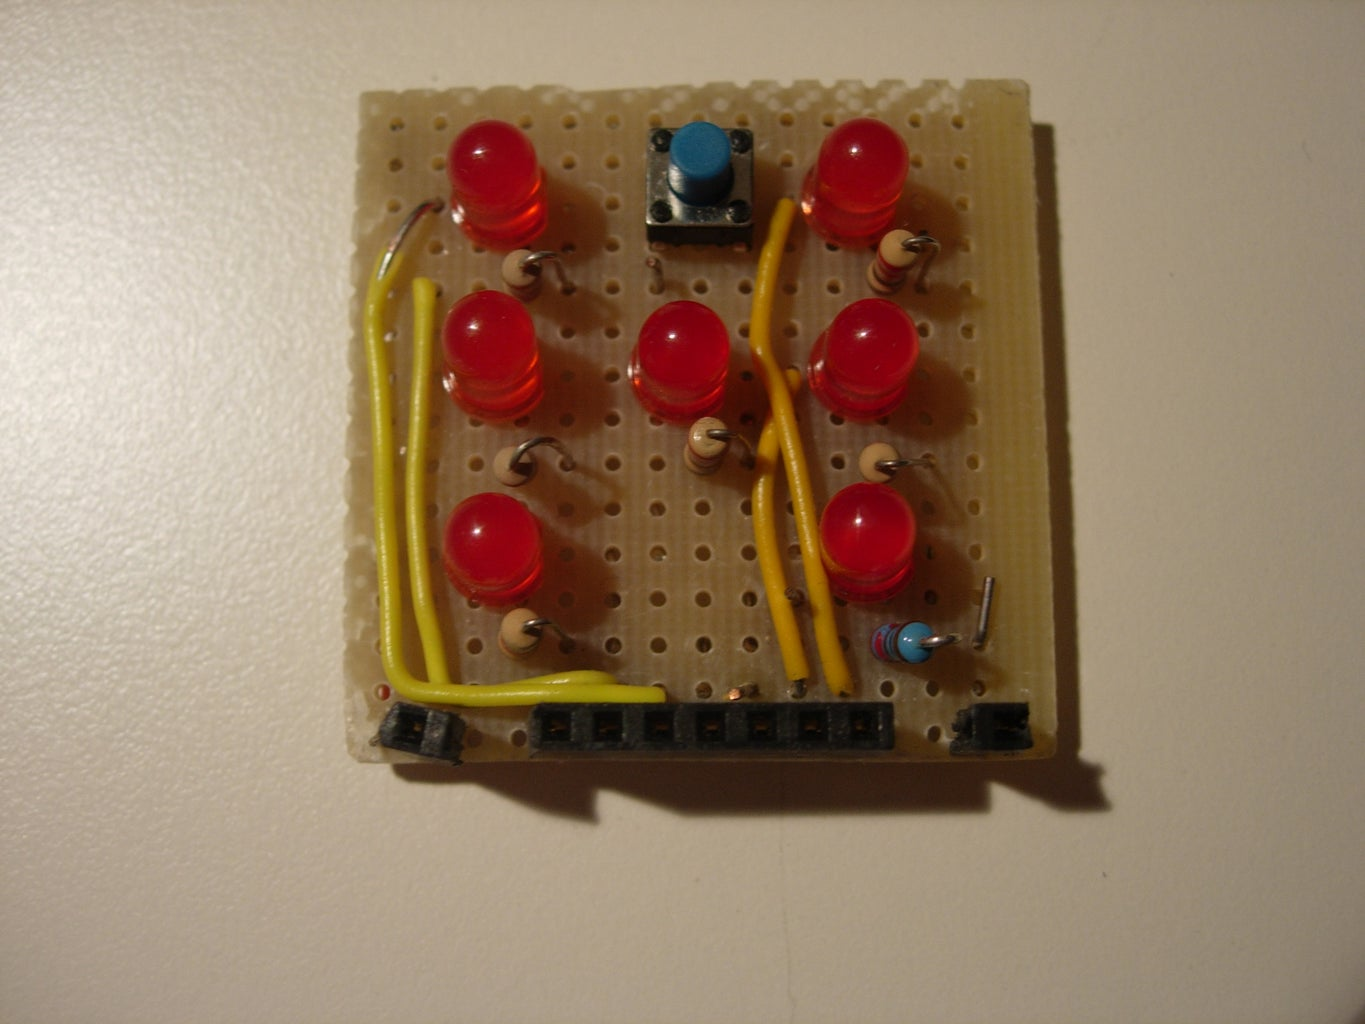 Solder the Arduino Led Dice